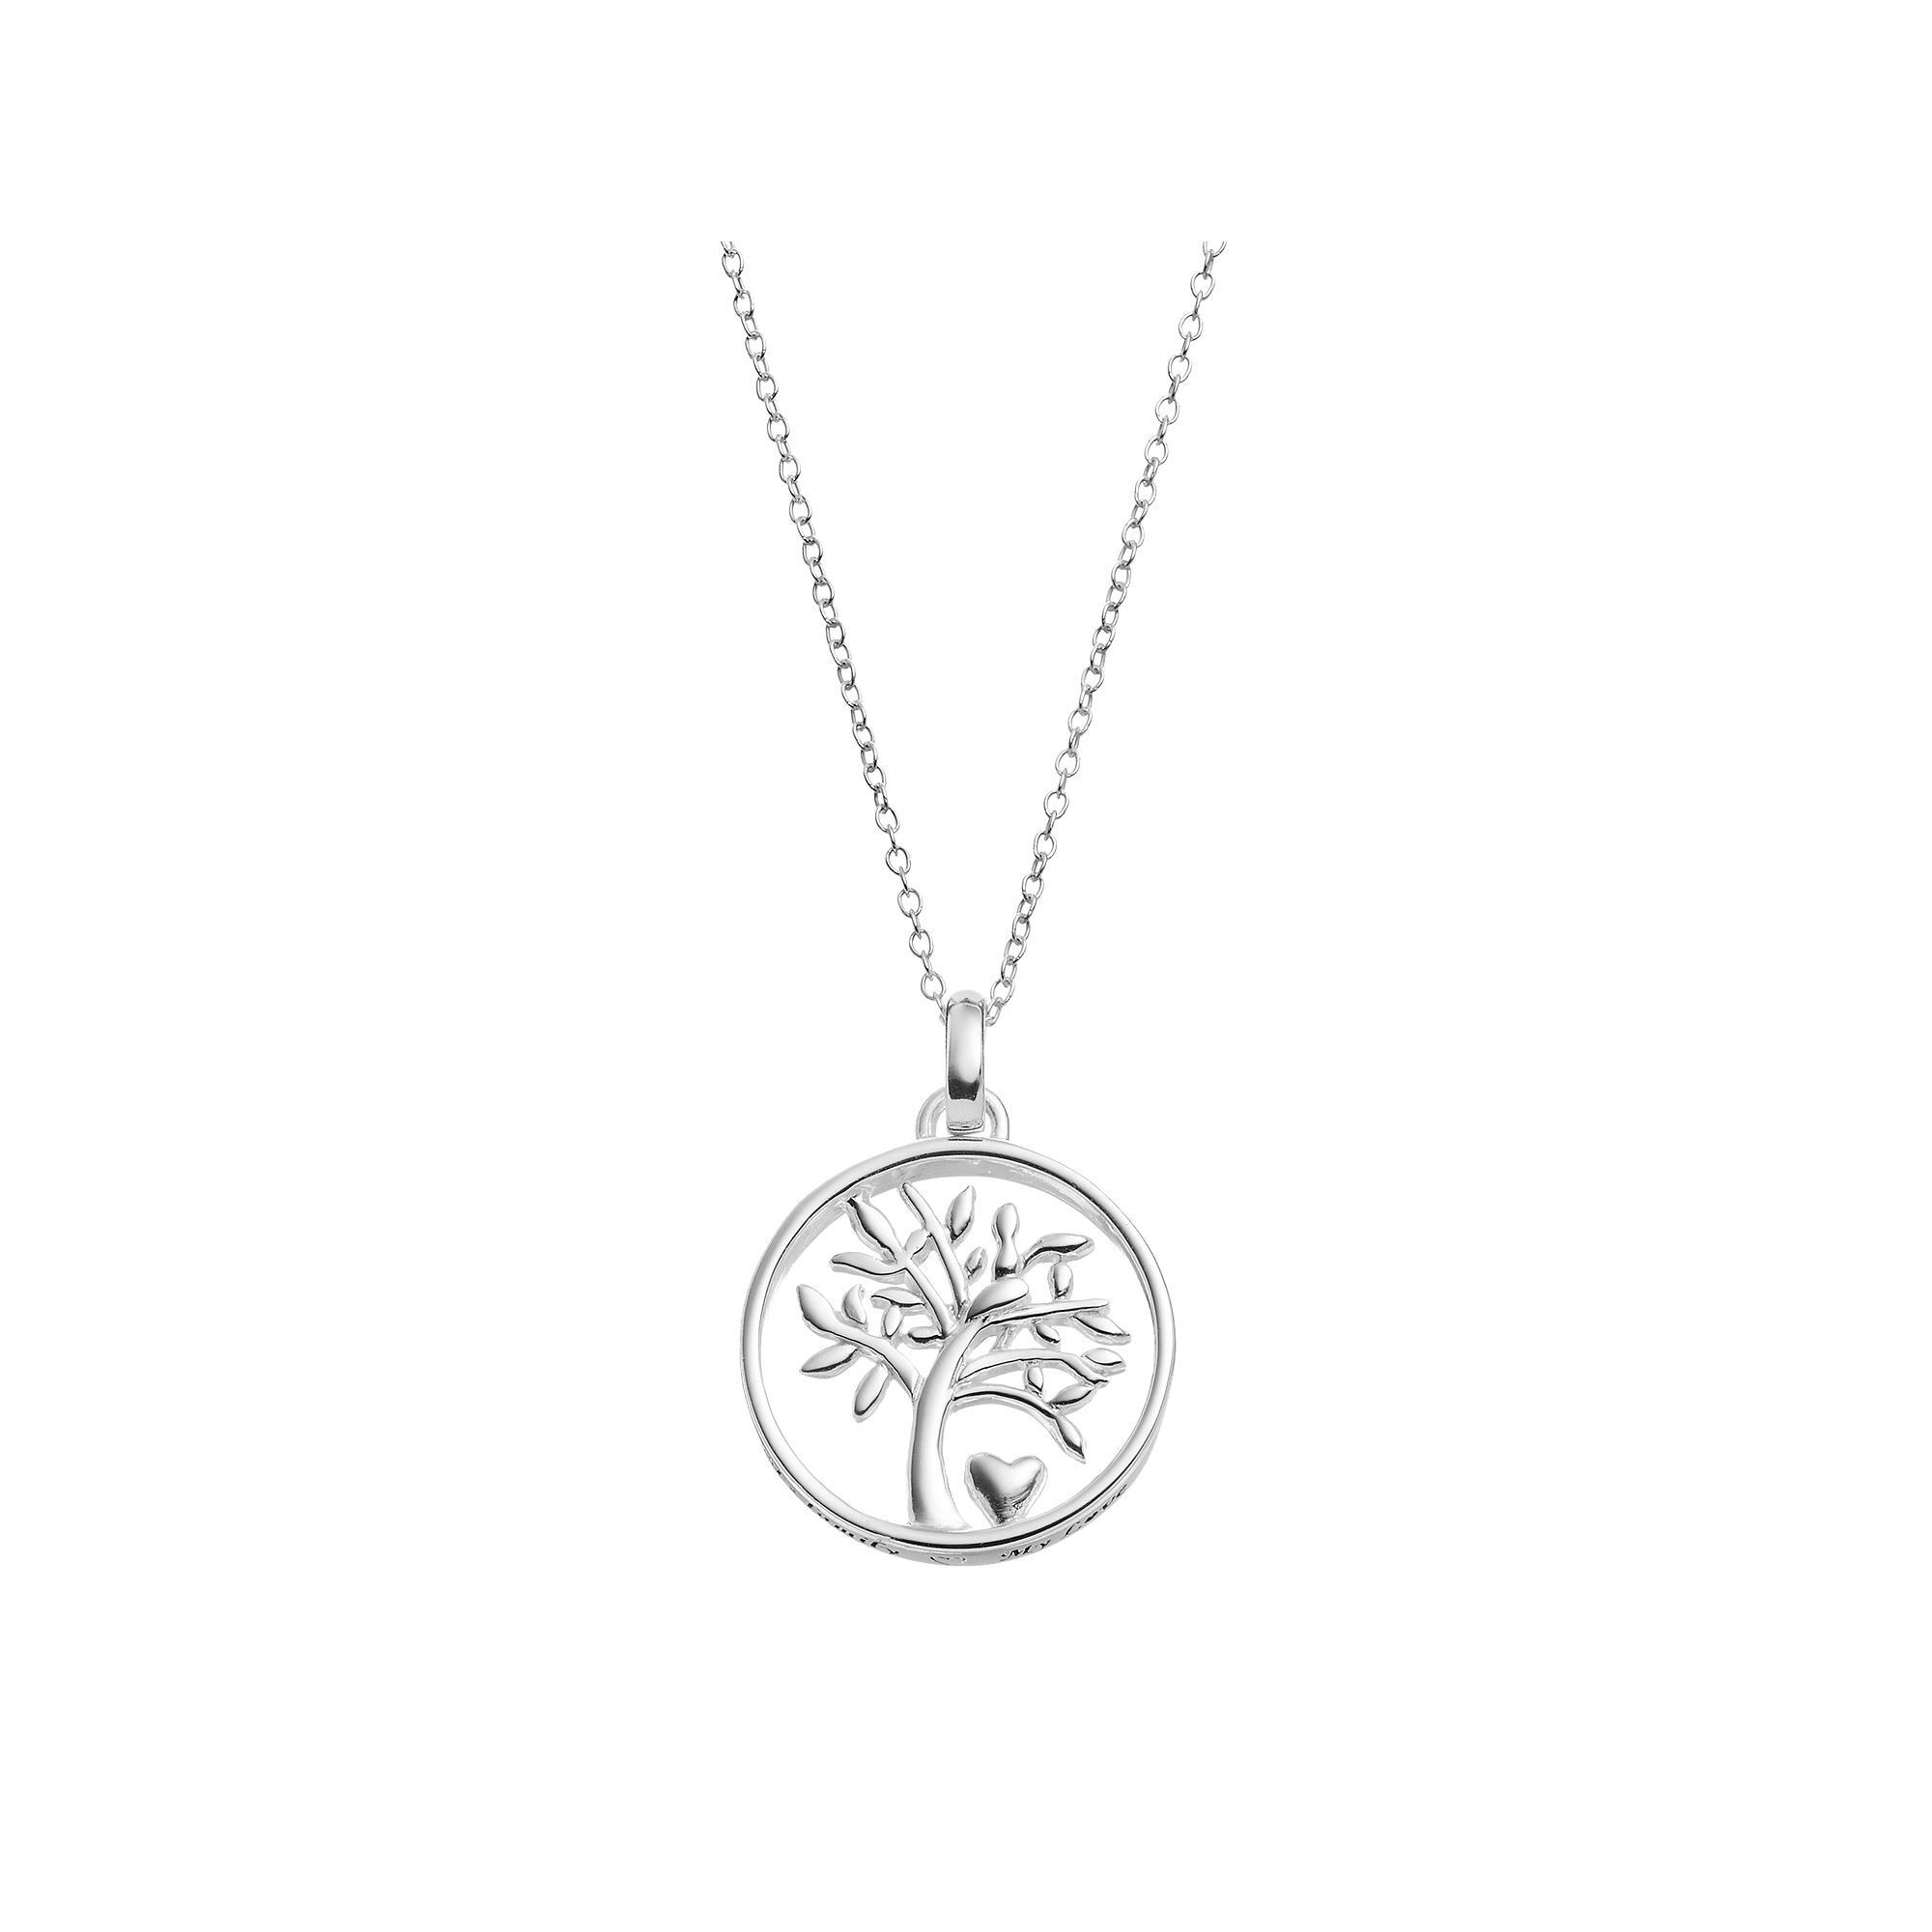 product family real pendant making for jewelry wholesale sterling women silver necklace with tree fashion